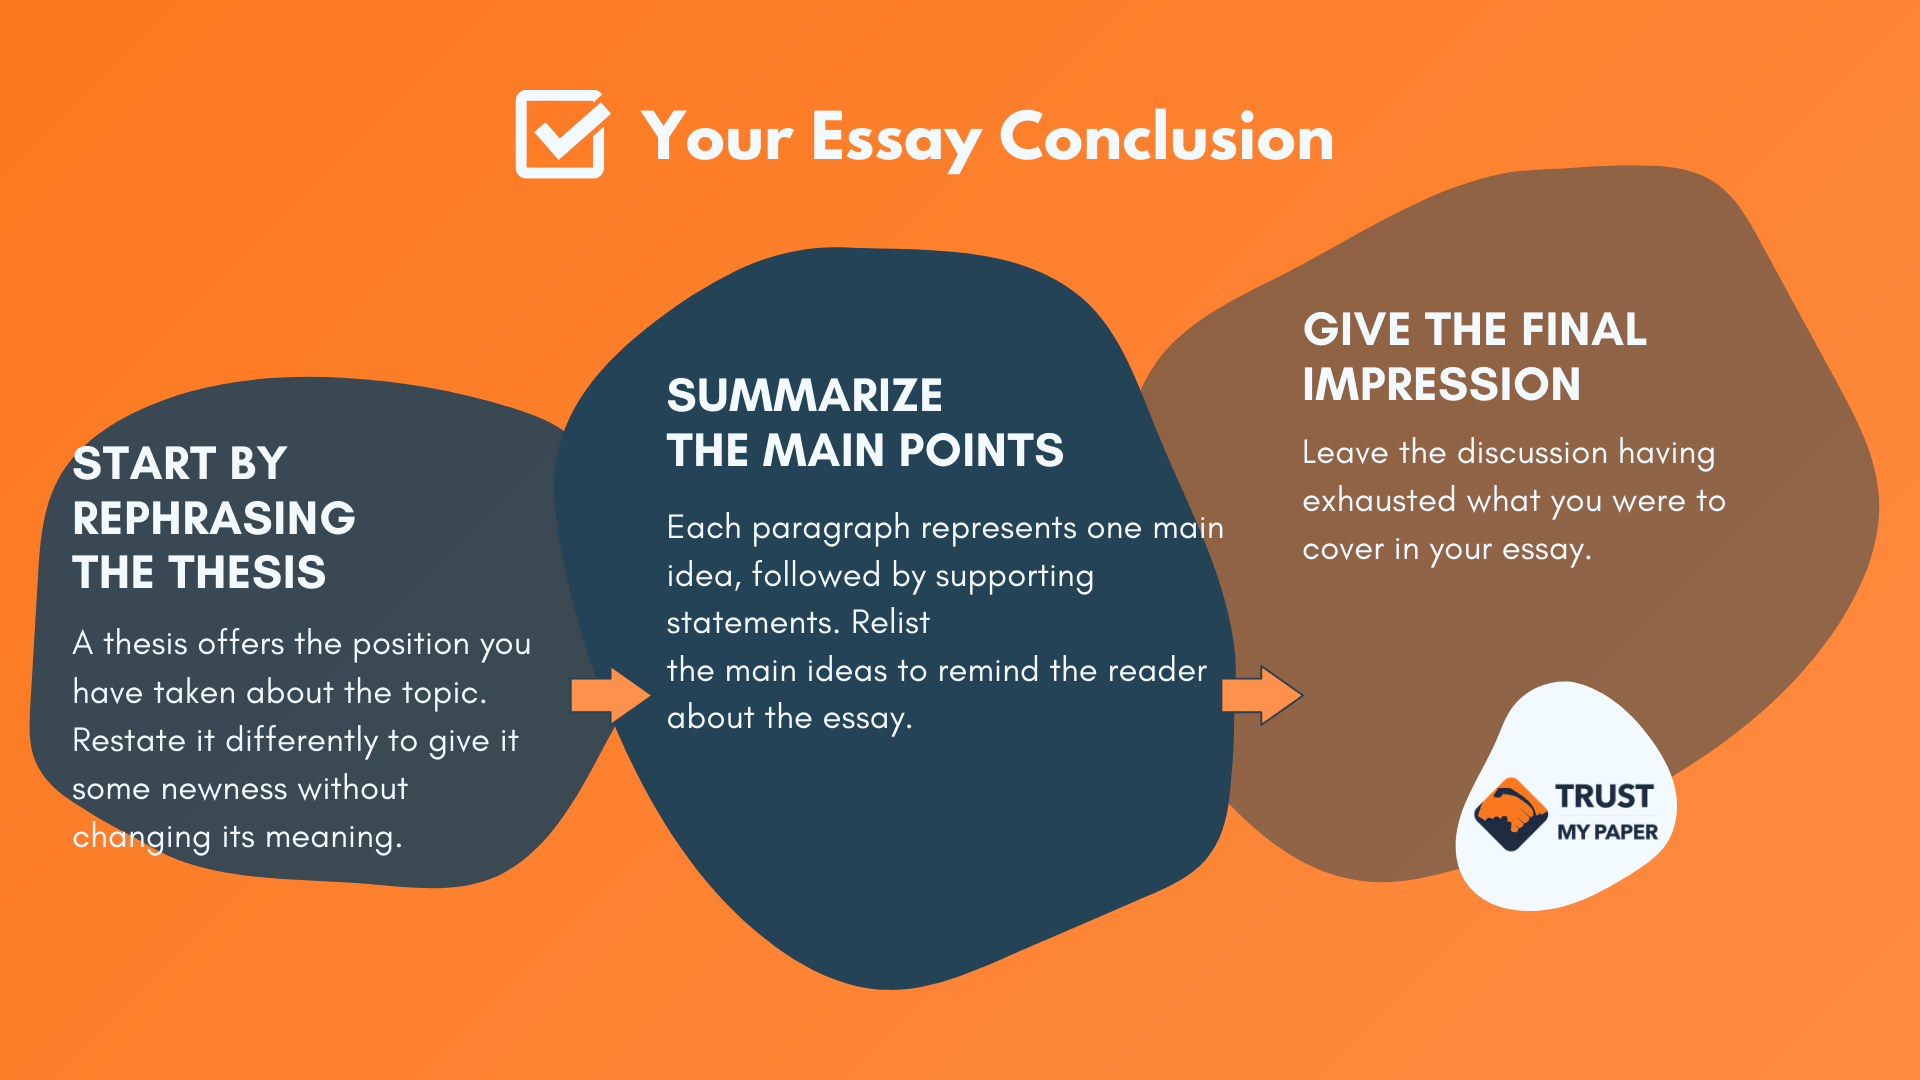 Writing an essay conclusion infographic